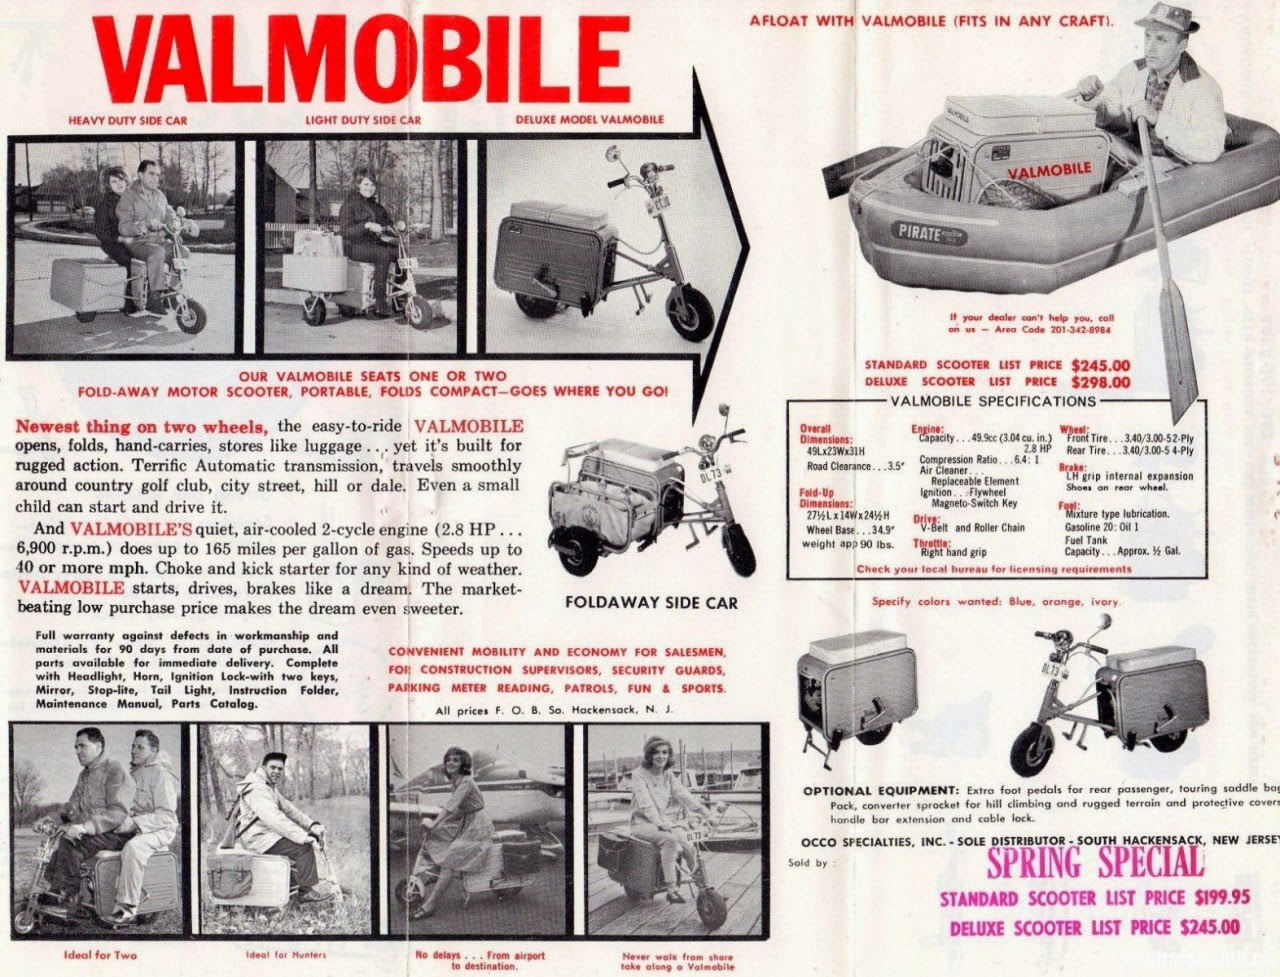 Valmobile Folding Motor Scooter